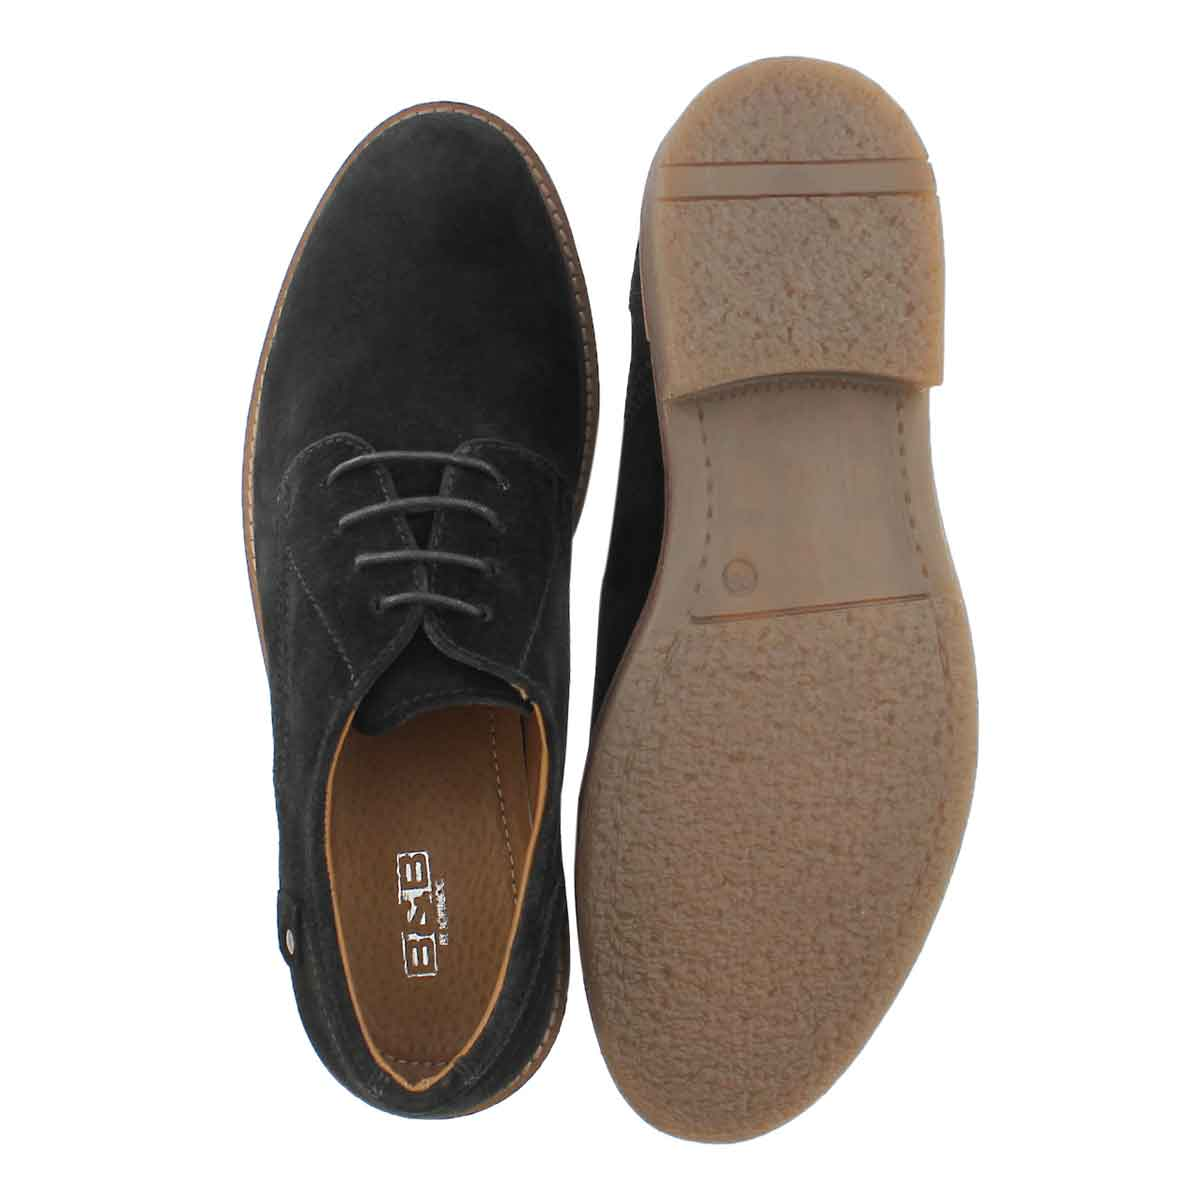 Mns Andy black lace up casual oxford